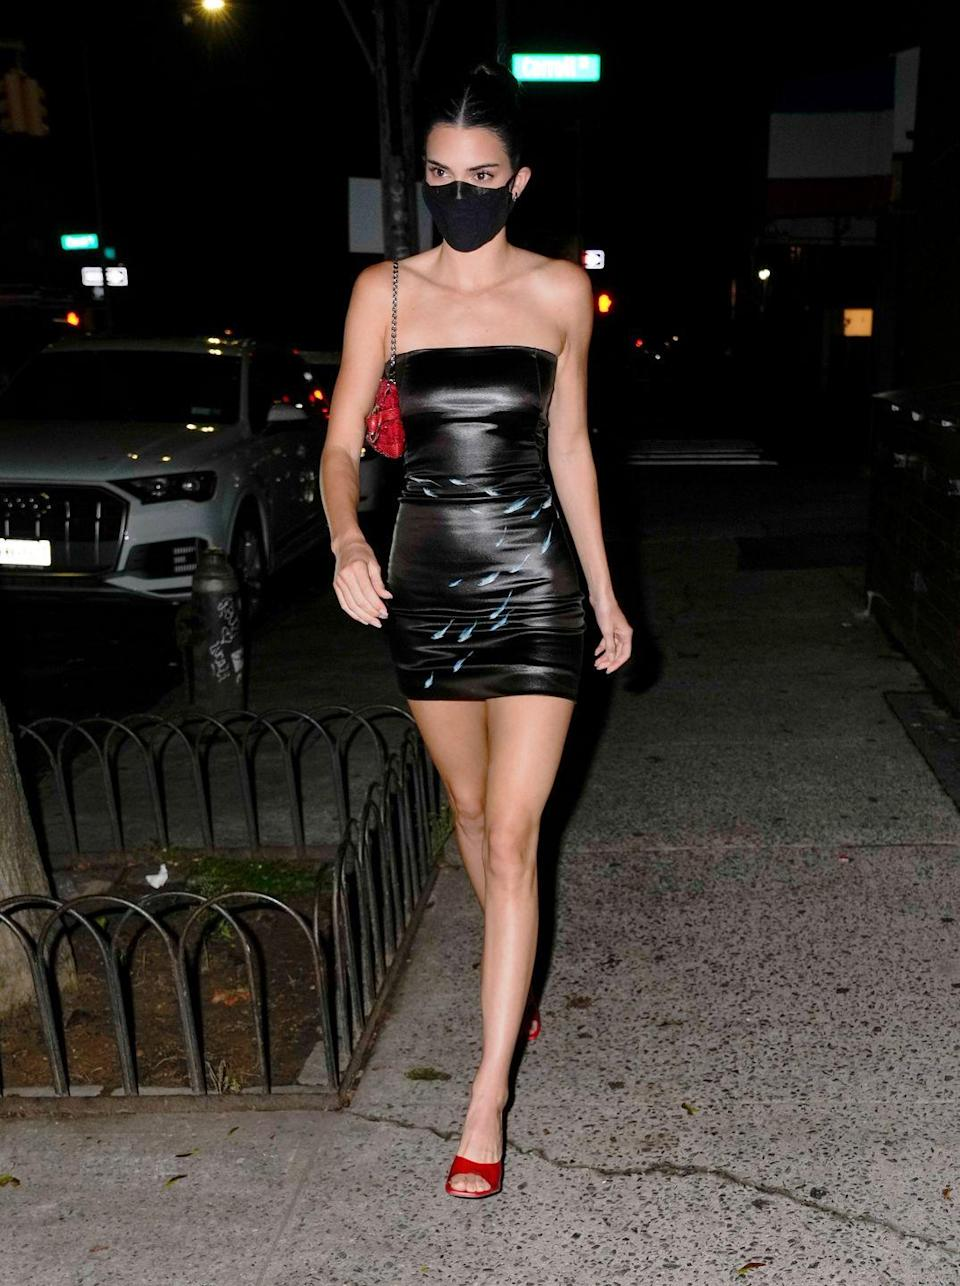 <p>You'd be forgiven for thinking Jenner was off to a fashion after party - it is New York Fashion Week after all.</p><p>But in fact, the model was heading to a birthday party for friend Fai Khadra at Lucali, where she brought along her date (current boyfriend) Devin Booker.</p>